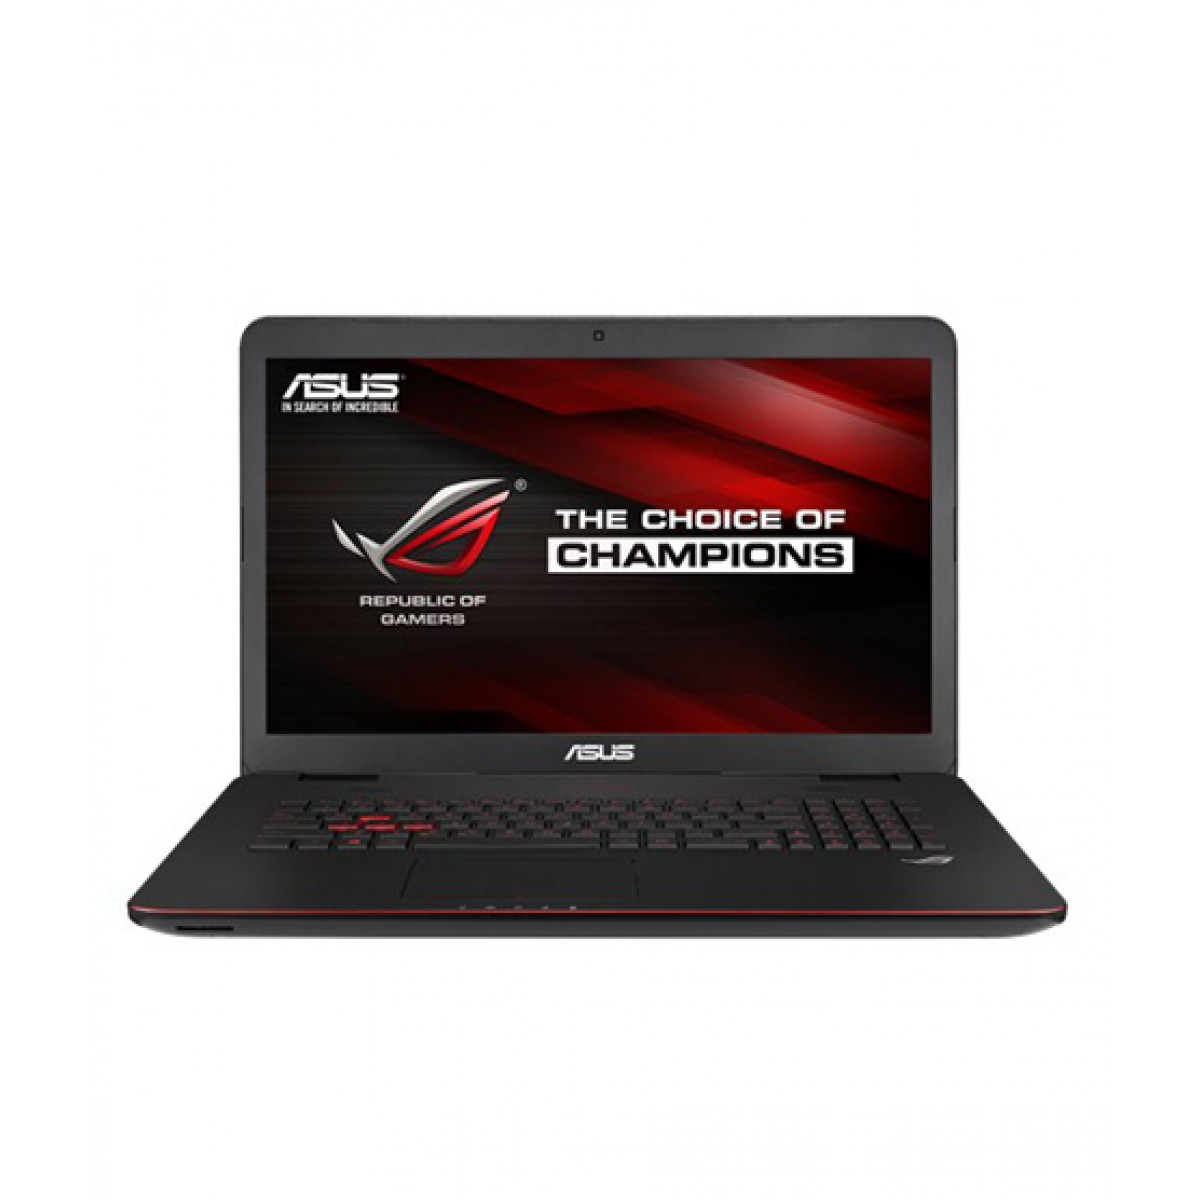 ASUS ROG G771JM NVIDIA GRAPHICS DRIVER FOR WINDOWS MAC